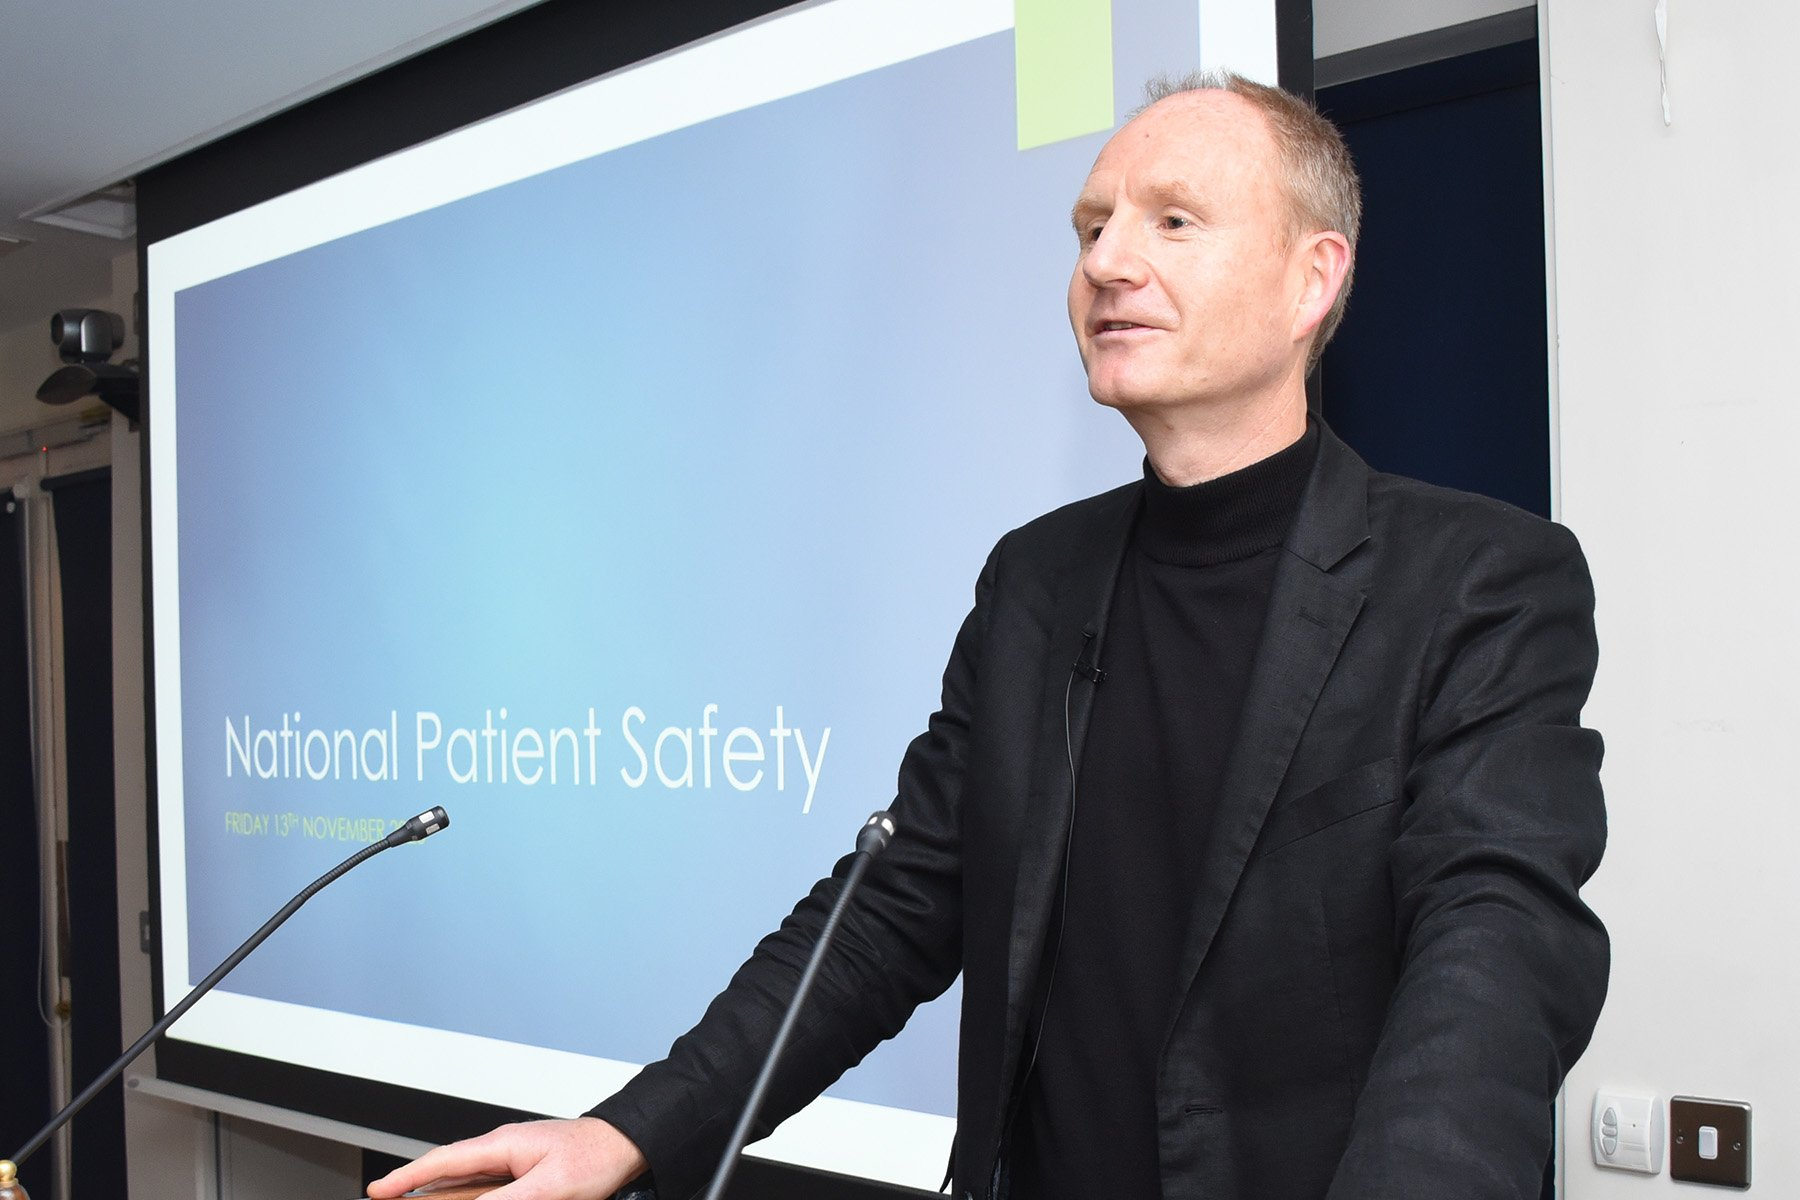 CAI 4th National Patient Safety in Anaesthesia Conference, KP Moore Competition and Winter College Lecture Dr Barry Lyons, CAI Director of Patient Safety and Quality Improvement